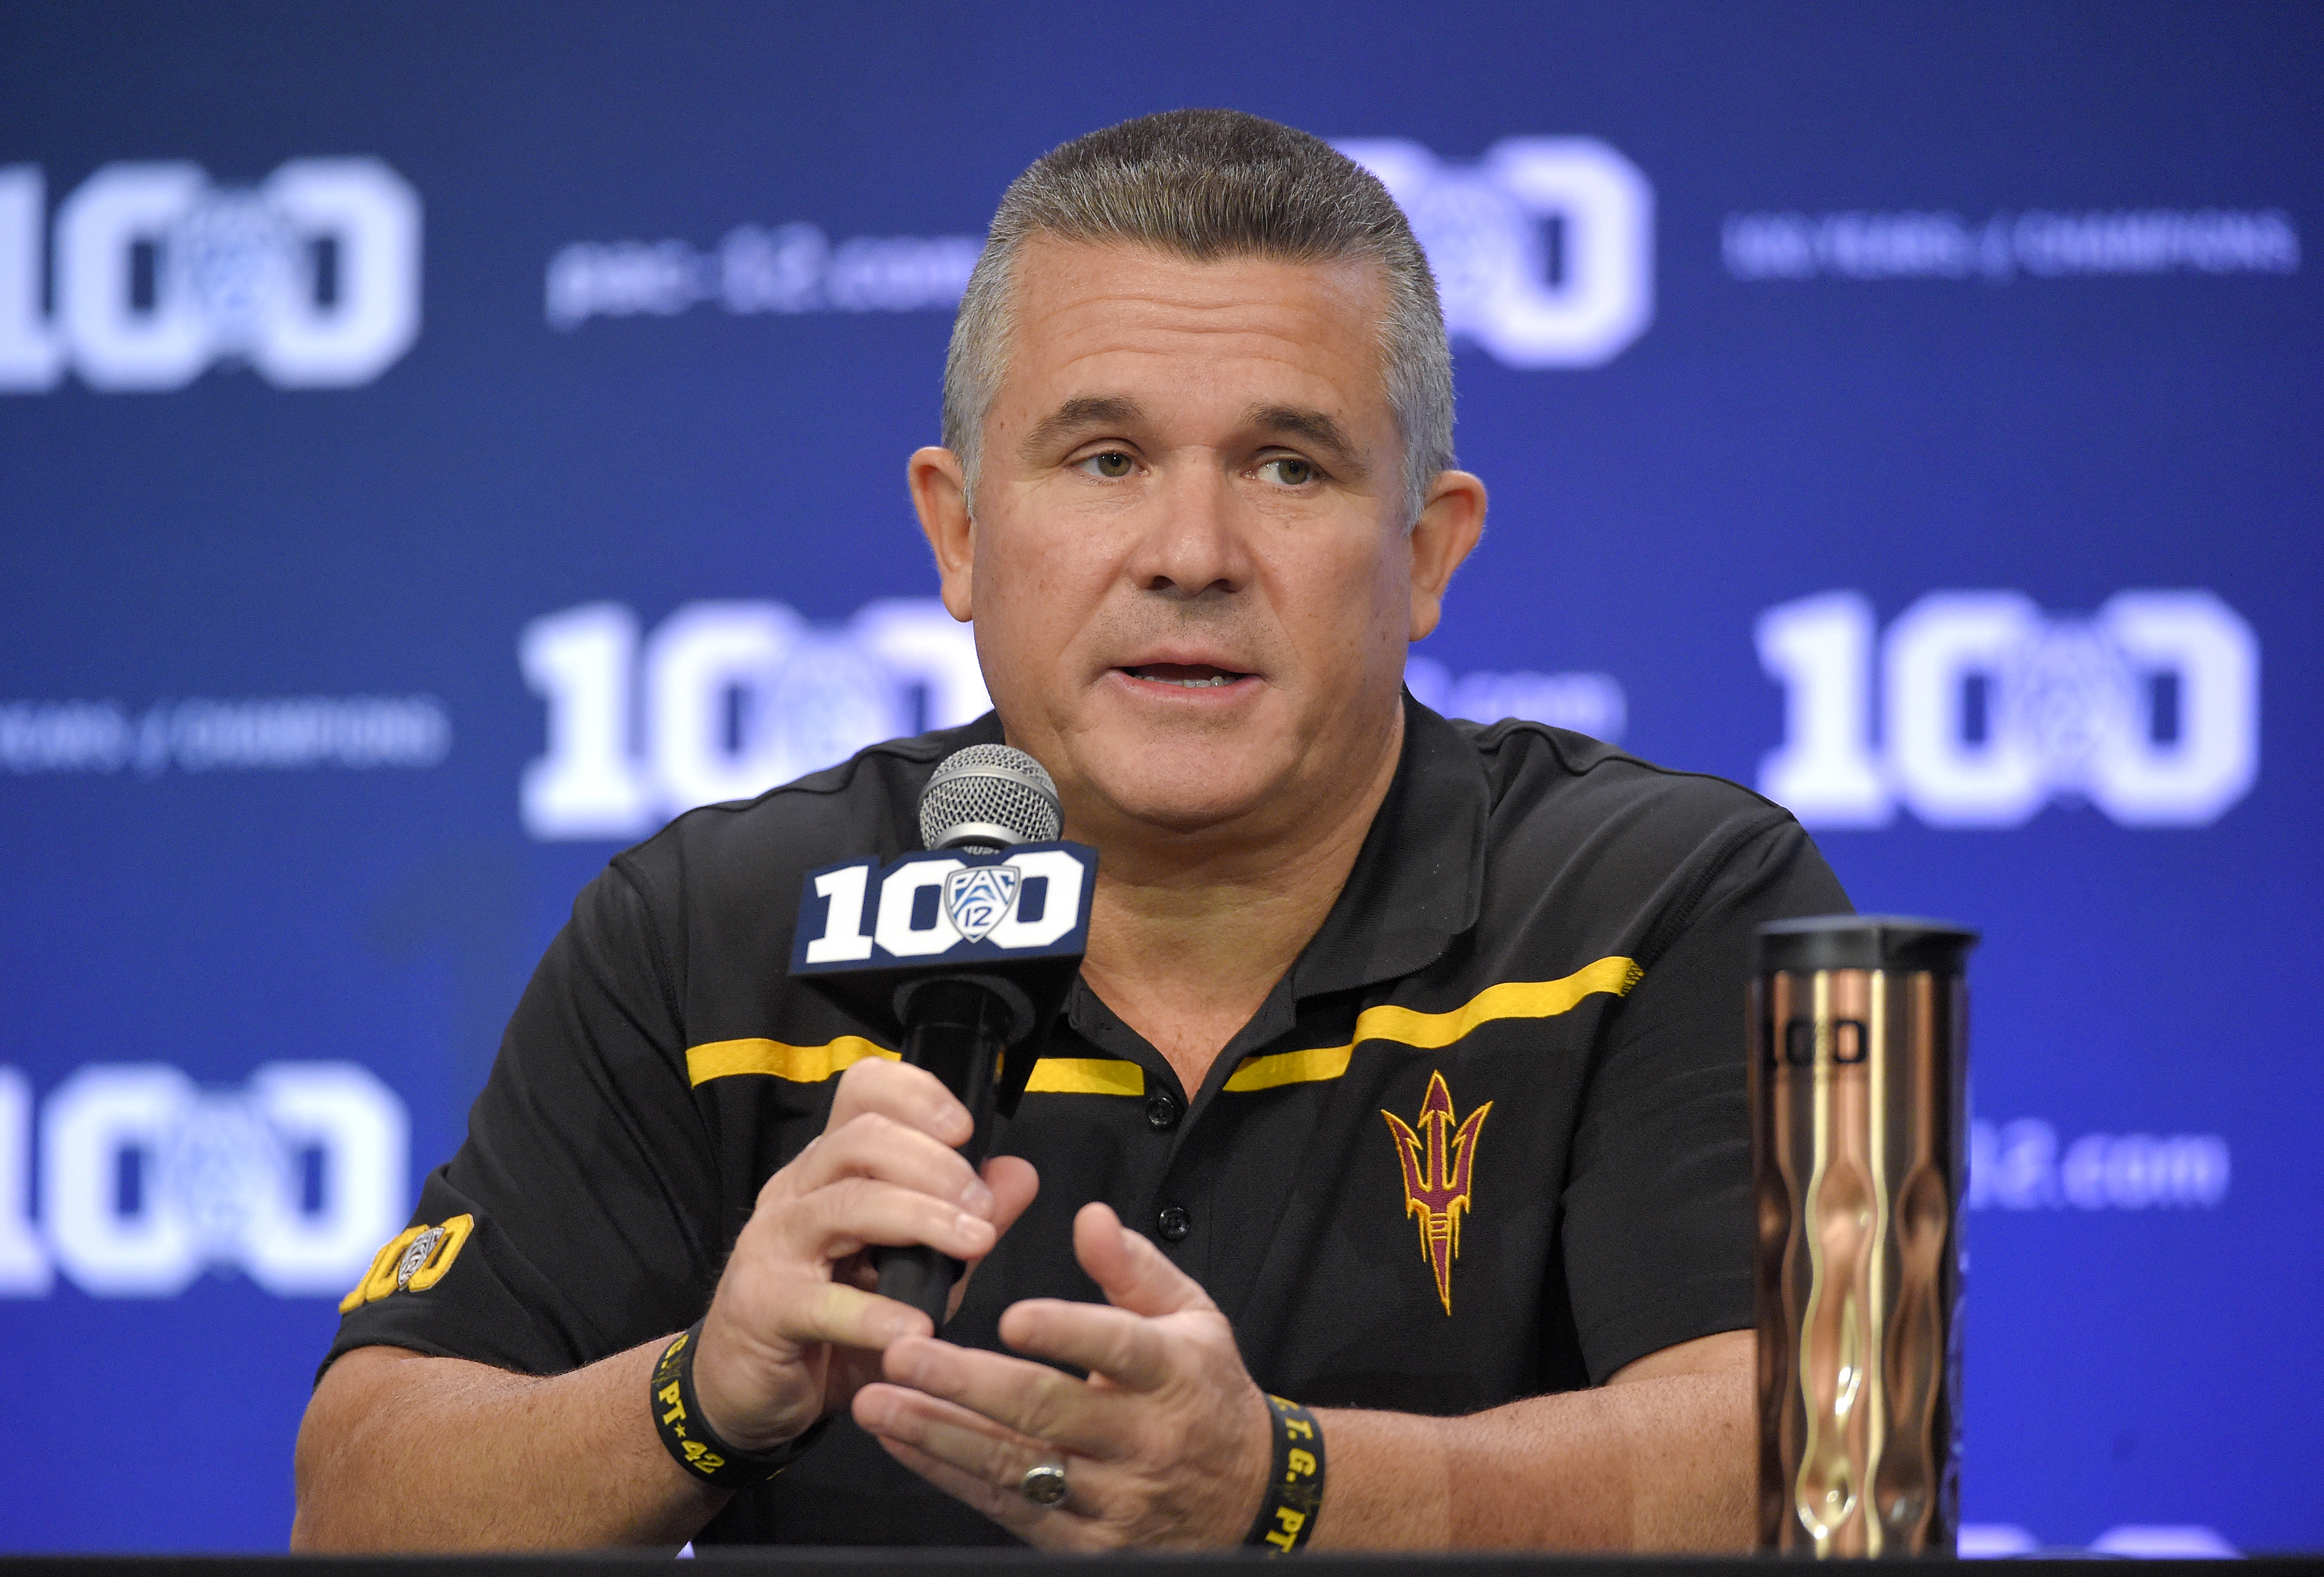 FILE - In this July 30, 2015, file photo, Arizona State head coach Todd Graham speaks to reporters during Pac-12 Football Media Days in Burbank, Calif. odd Graham is a master salesman, sometimes adding a dash of hyperbole to drive his point home. Calling